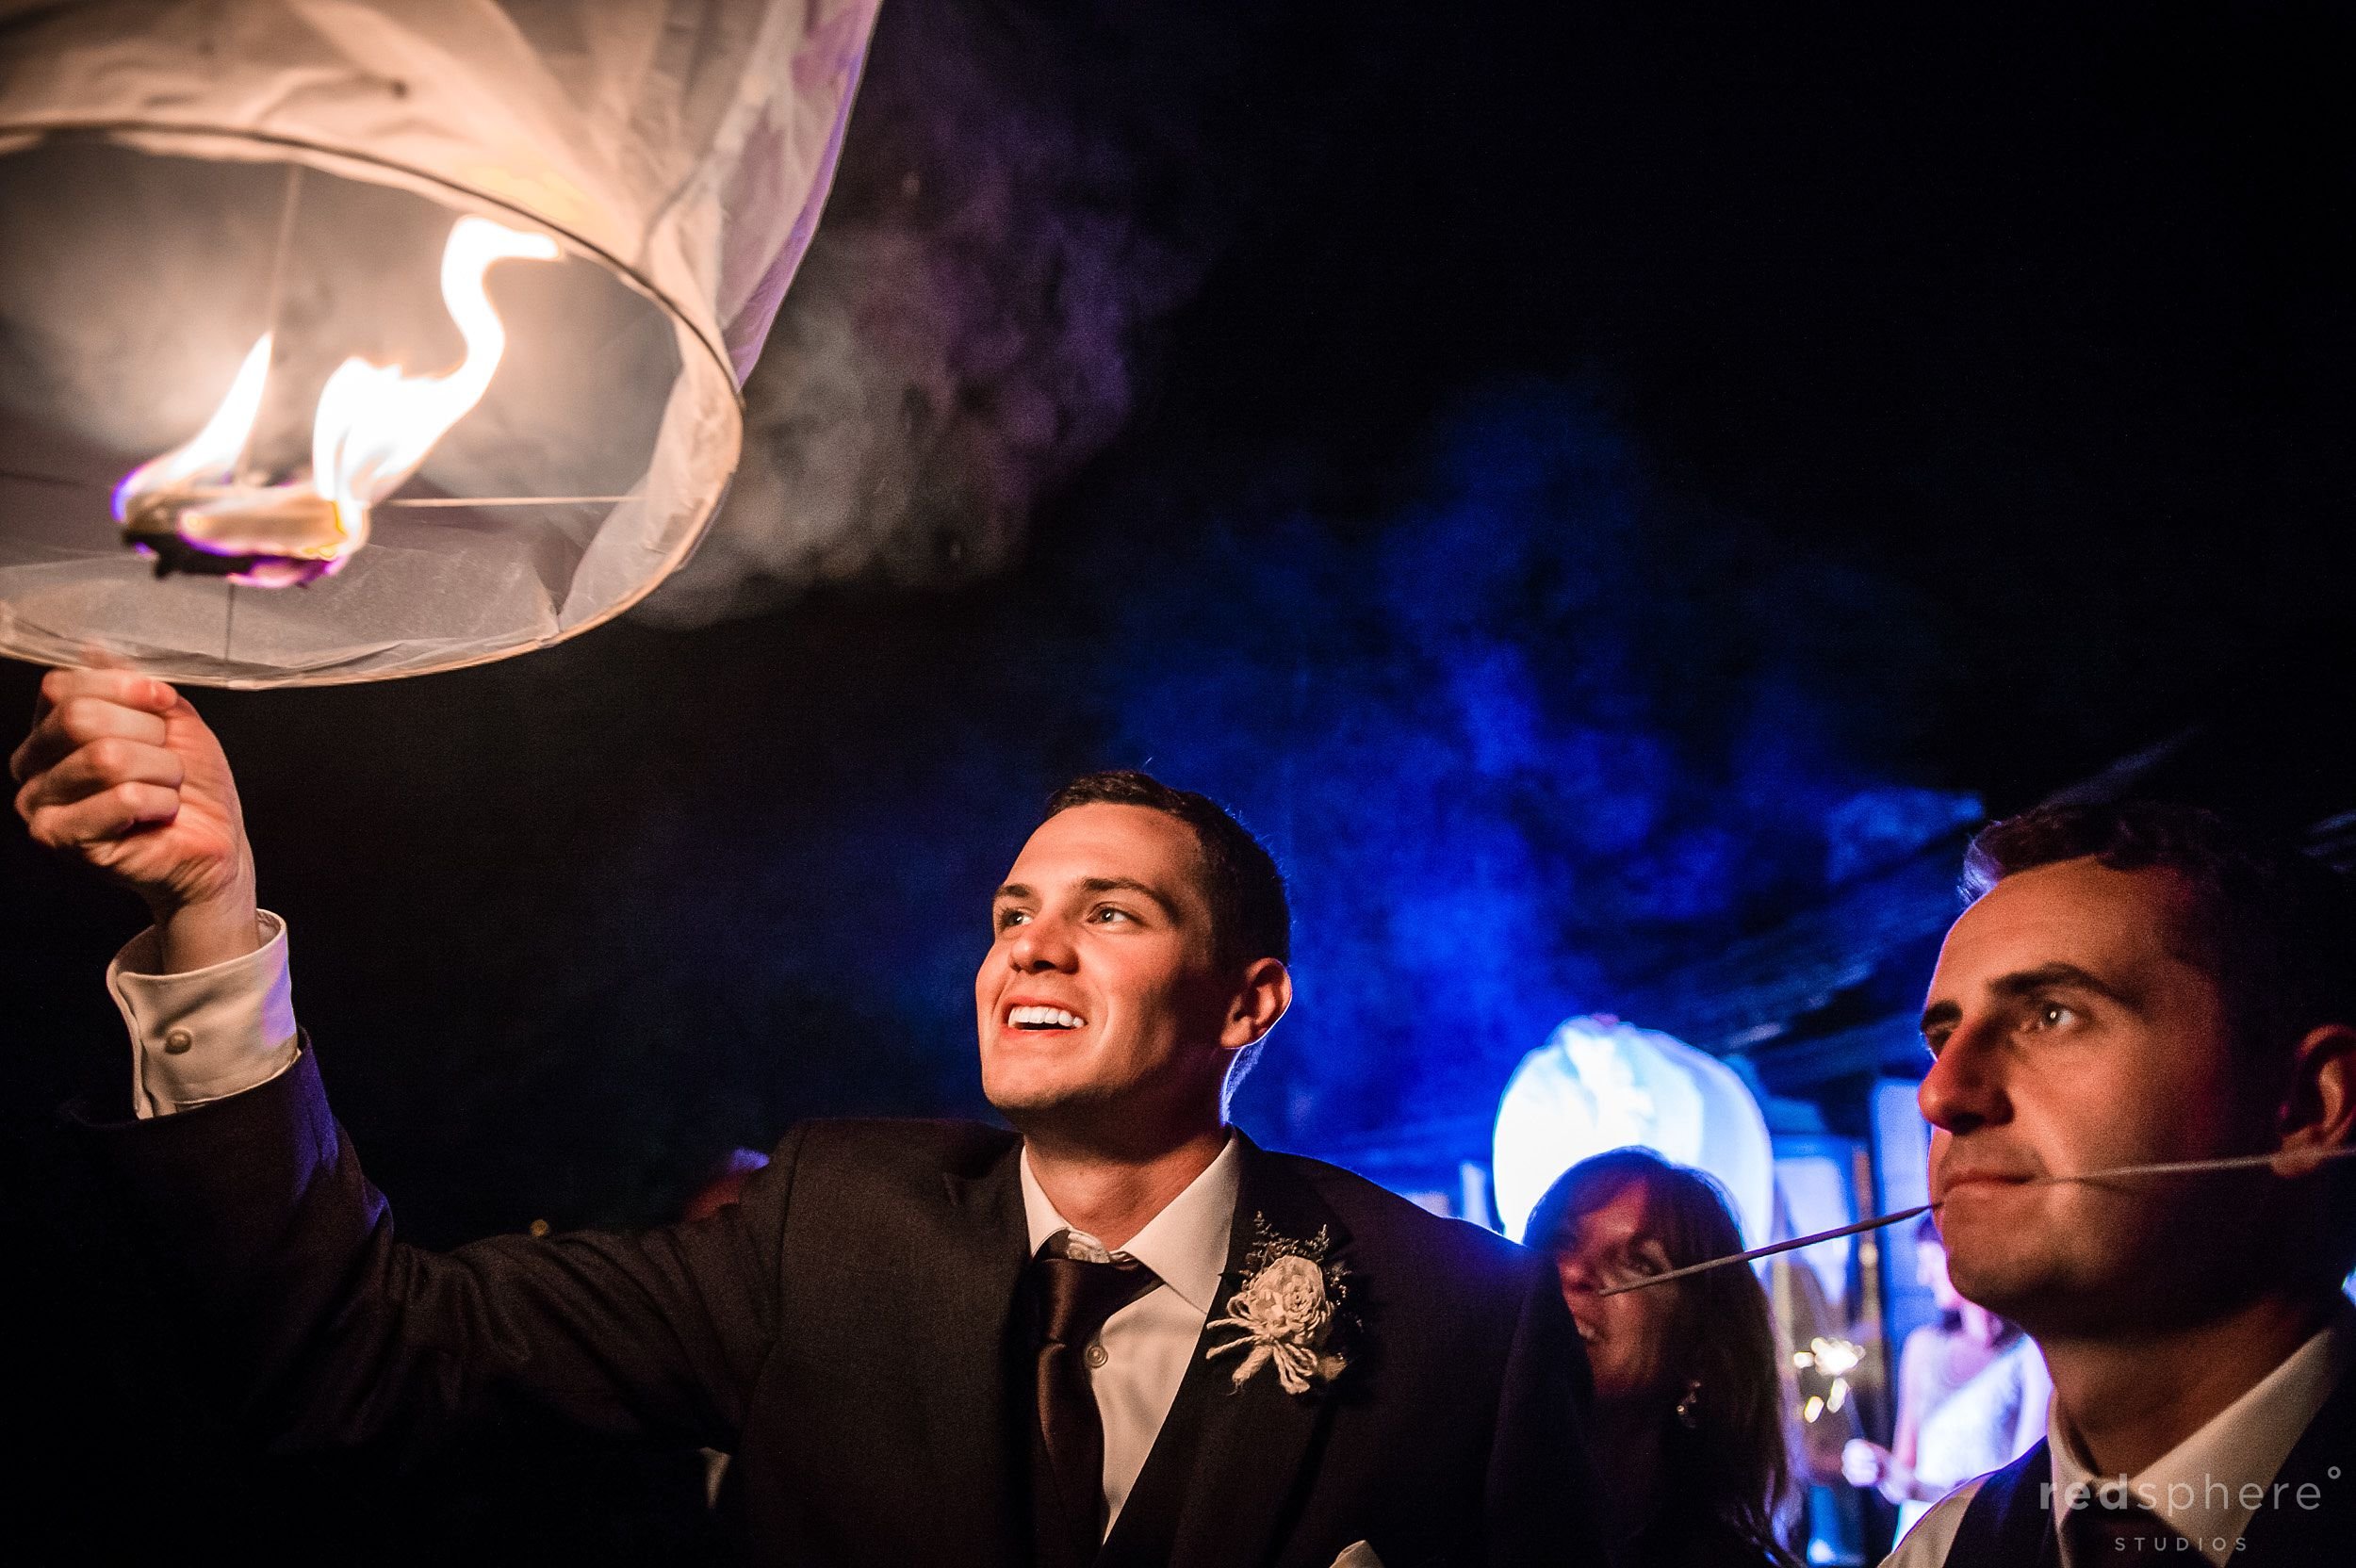 Groom Lighting Lanterns at Chapel Island Wedding Reception